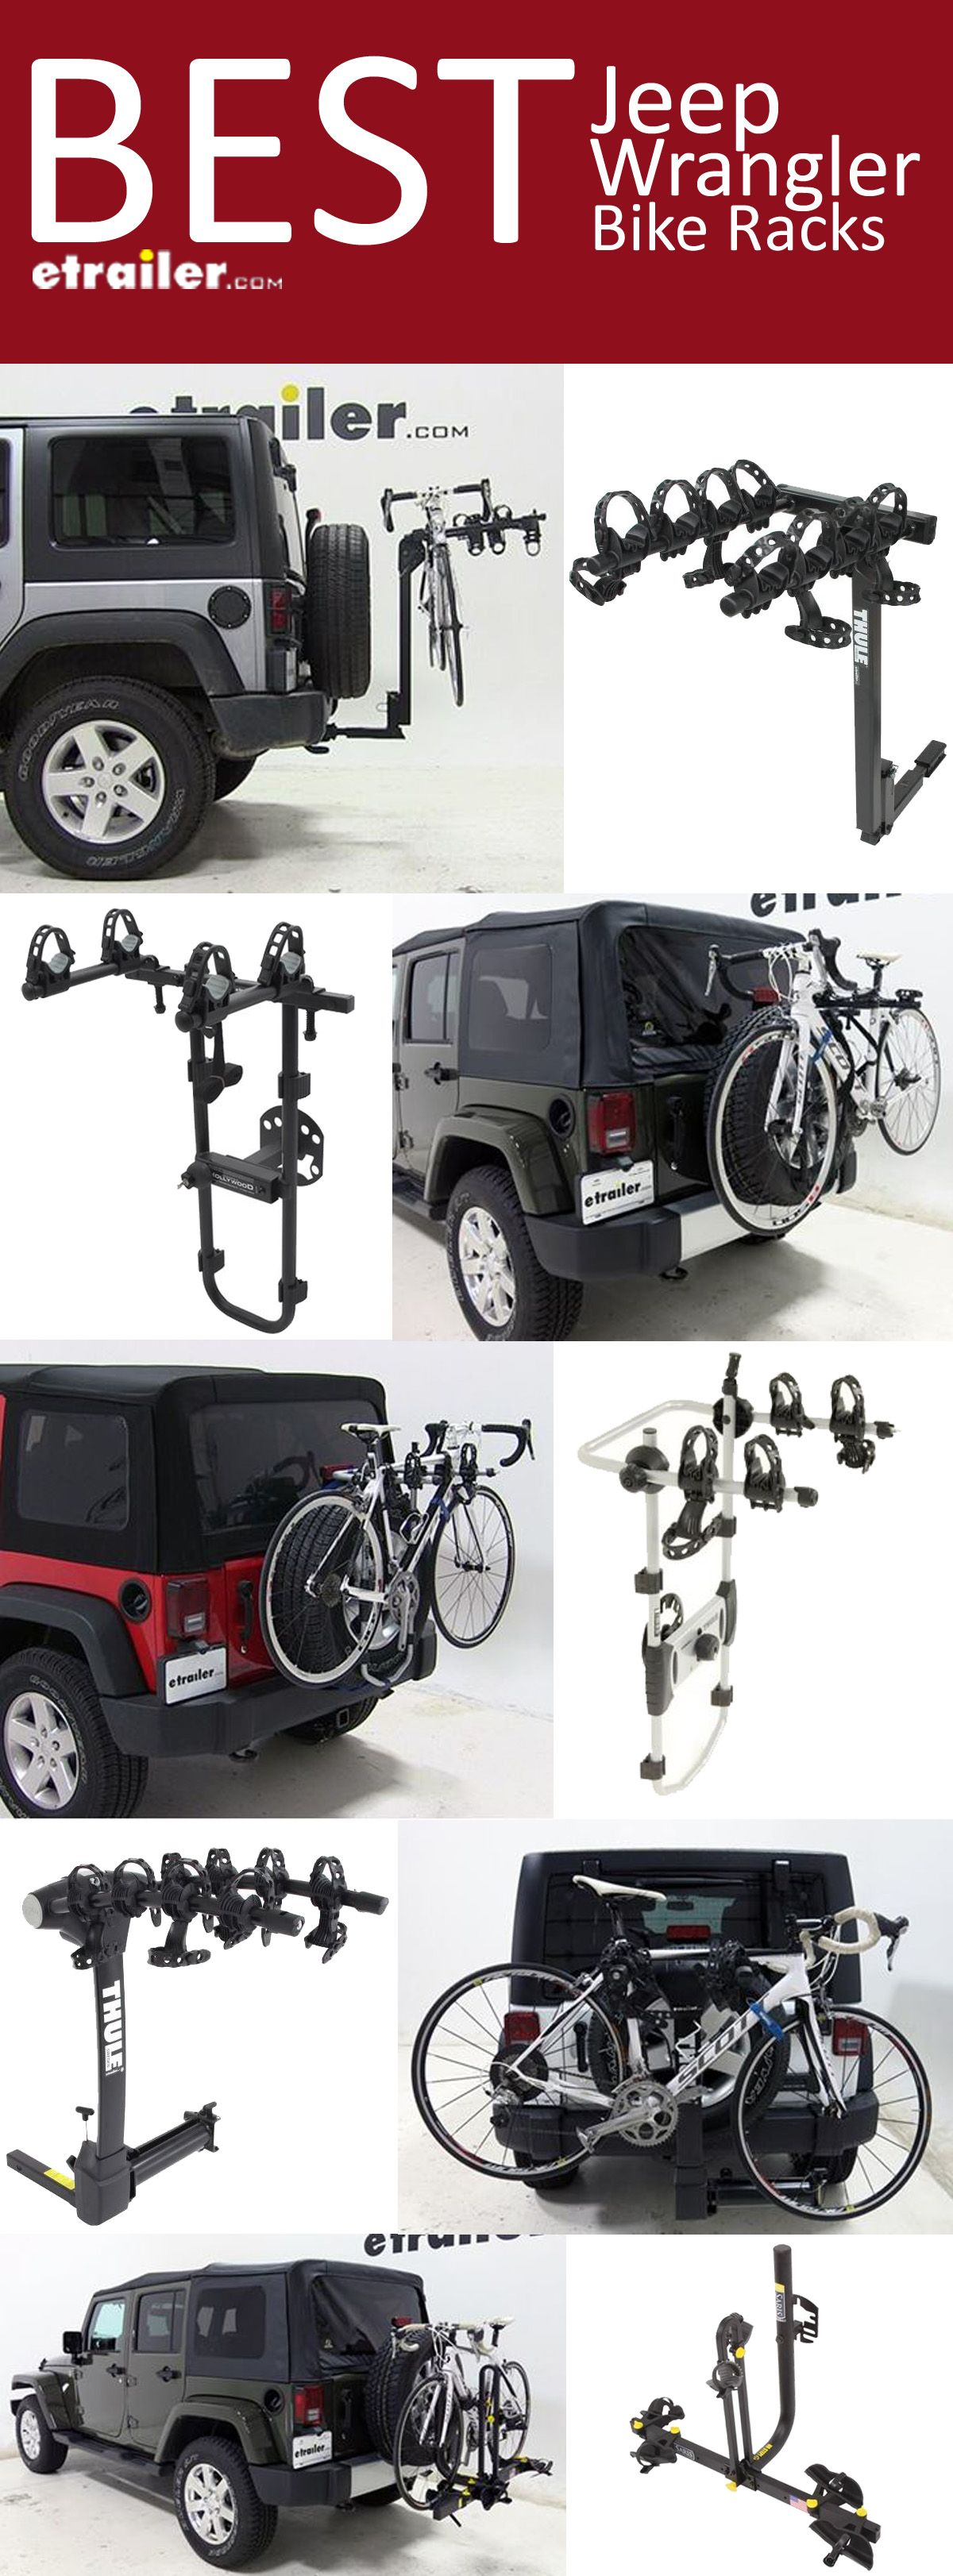 Here Is The Complete List Of The Best Jeep Wrangler Bike Racks Find The Perfect Fit Bike Rack To Tilt Swing Fol Jeep Wrangler Jeep Wrangler Accessories Jeep